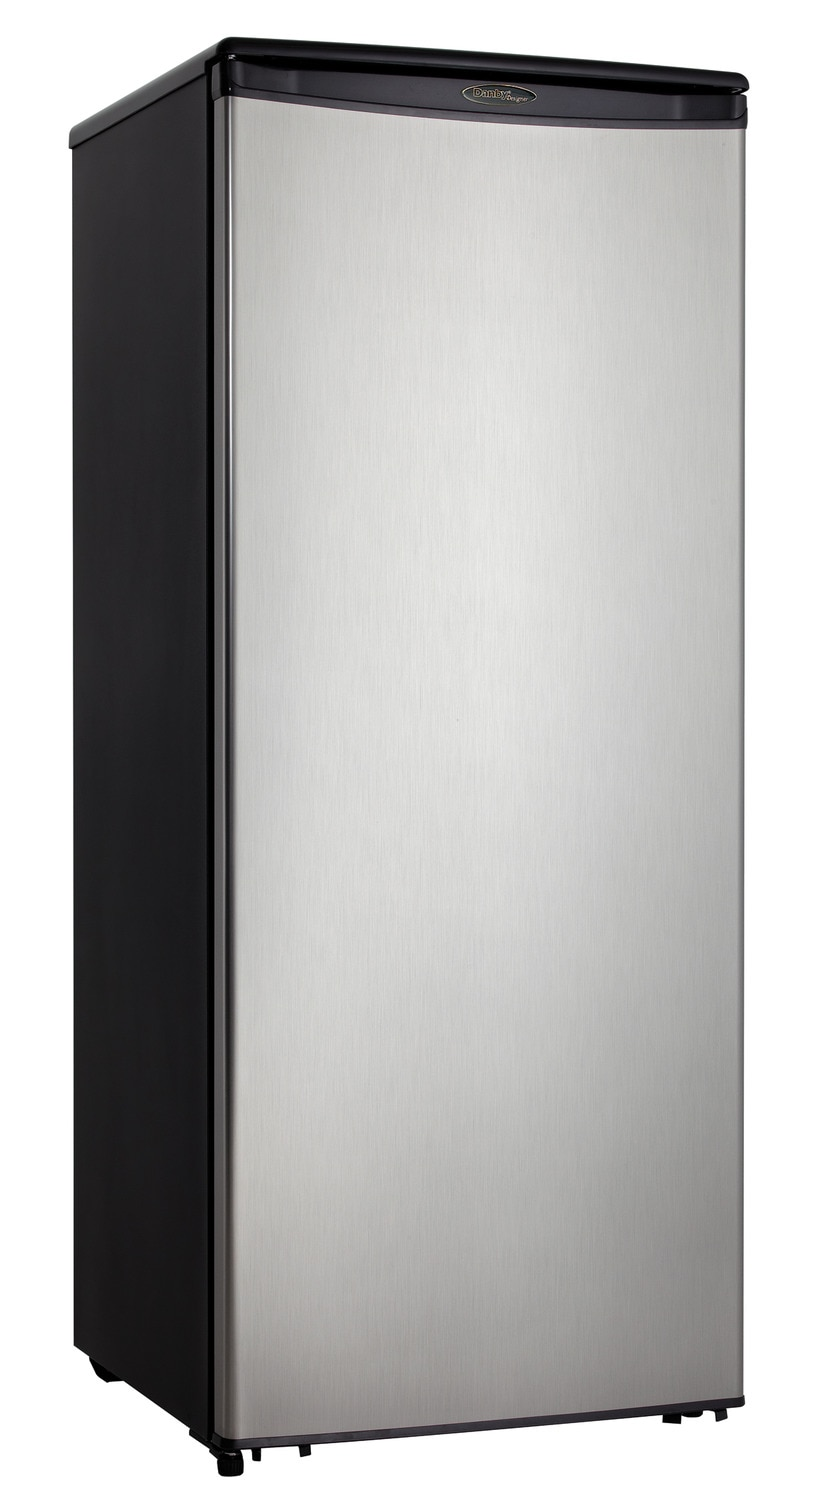 Refrigerators and Freezers - Danby Black All-Refrigerator (11 Cu. Ft.) - DAR110A1BSLDD